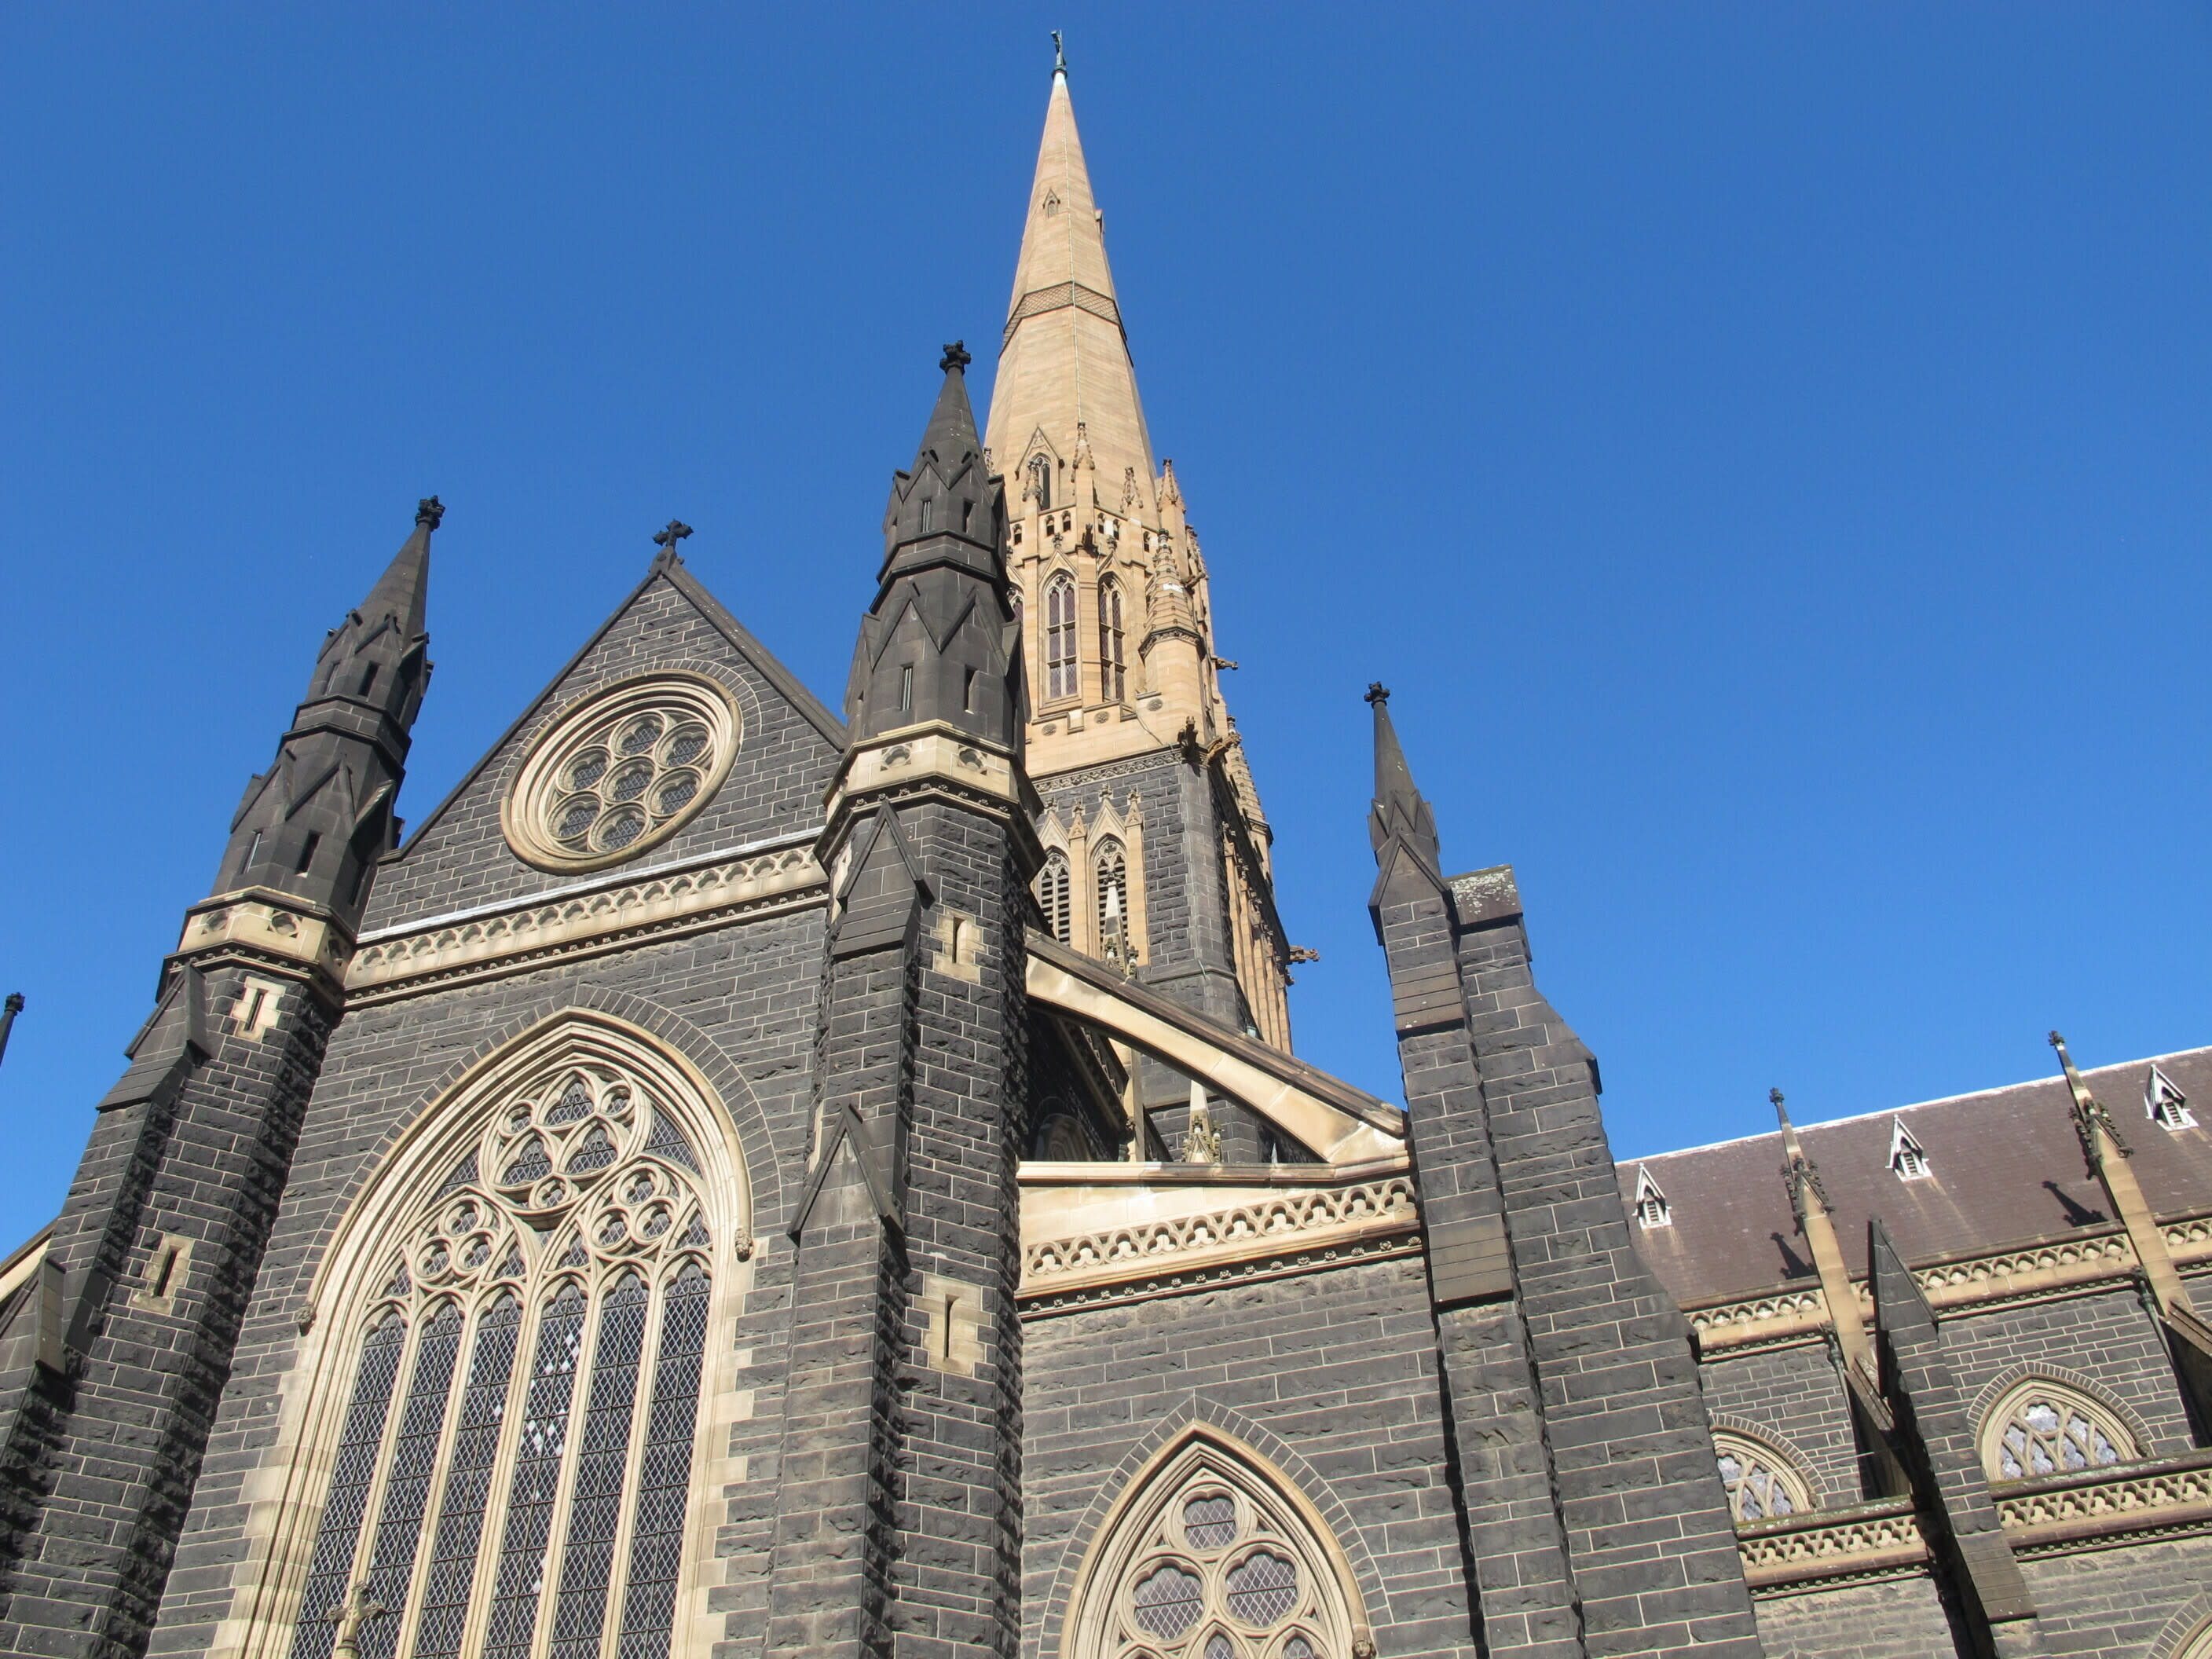 FILE - This Sept. 9, 2018, file photo shows the facade of St. Patrick's Cathedral in Melbourne. Cardinal George Pell's appeal against his convictions for child molestation was largely a question of who the jury should have believed, his accuser or a senior priest whose church role was likened to Pell's bodyguard. Pell's accuser was a 13-year-old choirboy when he alleged that he was abused by then-Melbourne Archbishop Pell at the city's St. Patrick's Cathedral in December 1996 and February 1997. (AP Photo/Rod McGuirk, File)